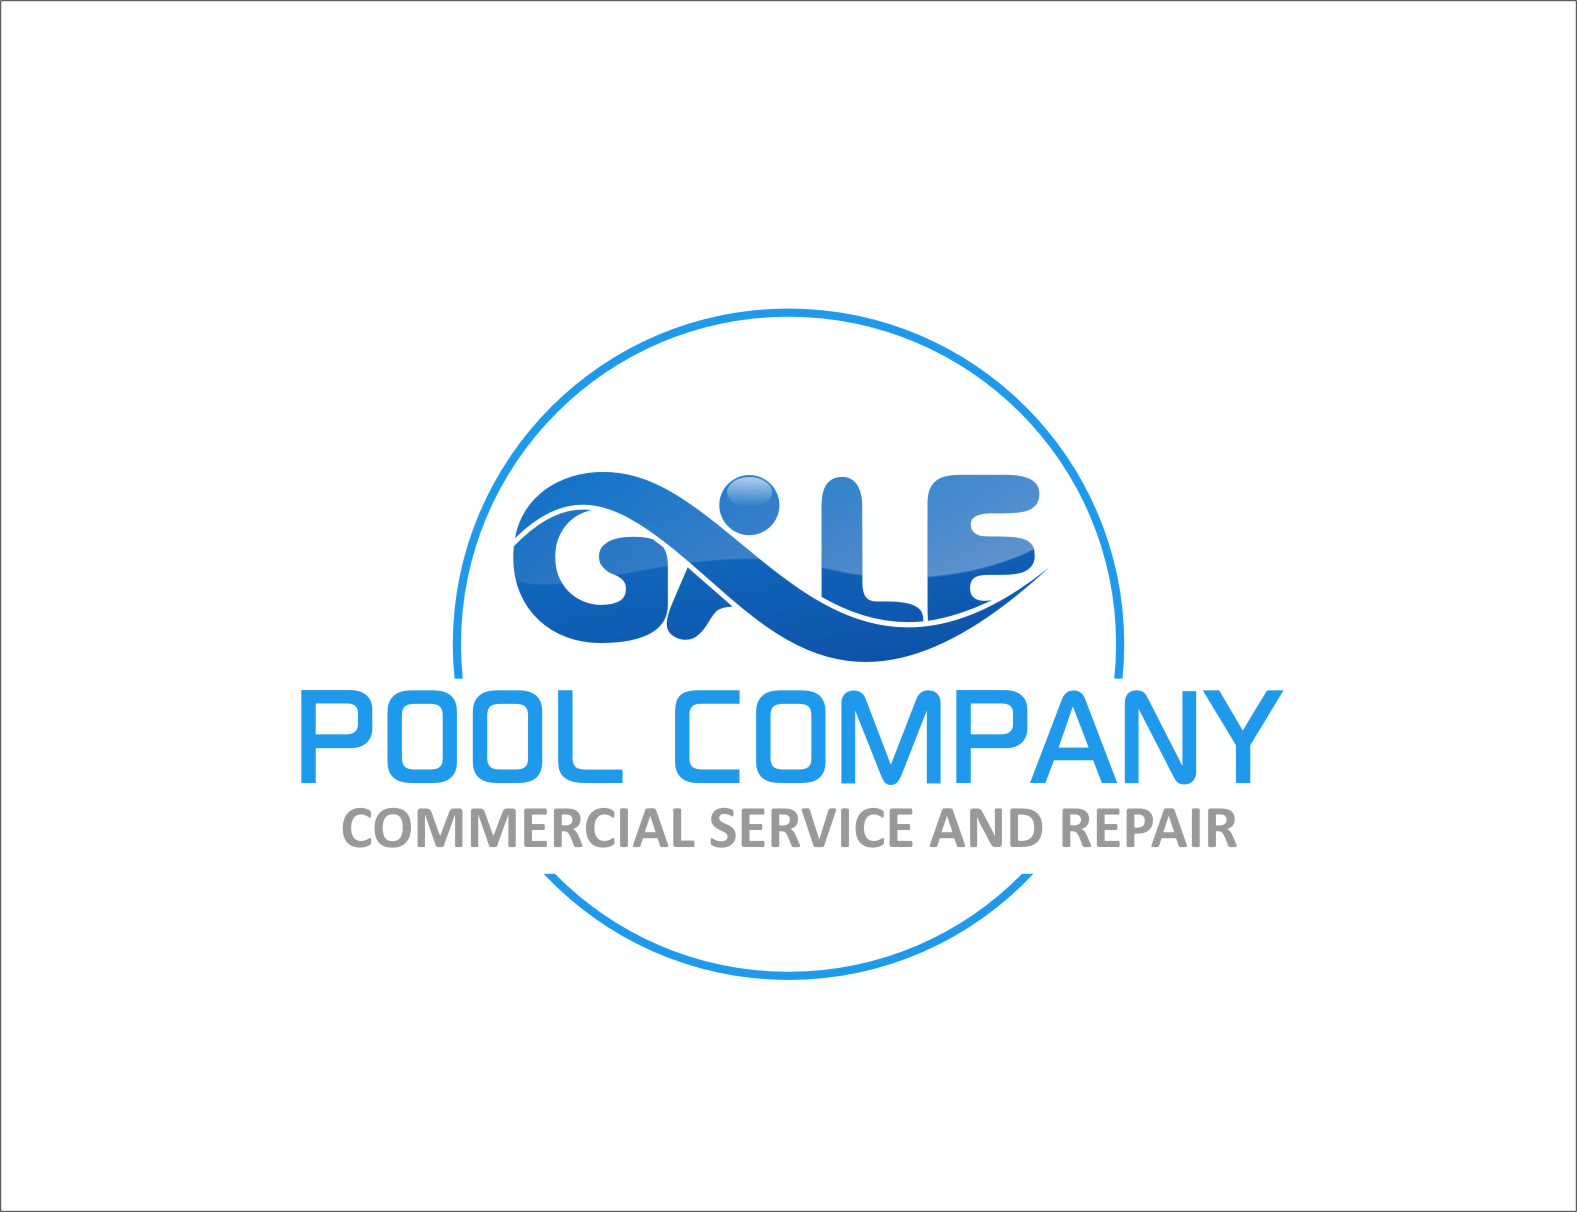 Logo Design by RasYa Muhammad Athaya - Entry No. 60 in the Logo Design Contest Imaginative Logo Design for Gale Pool Company.